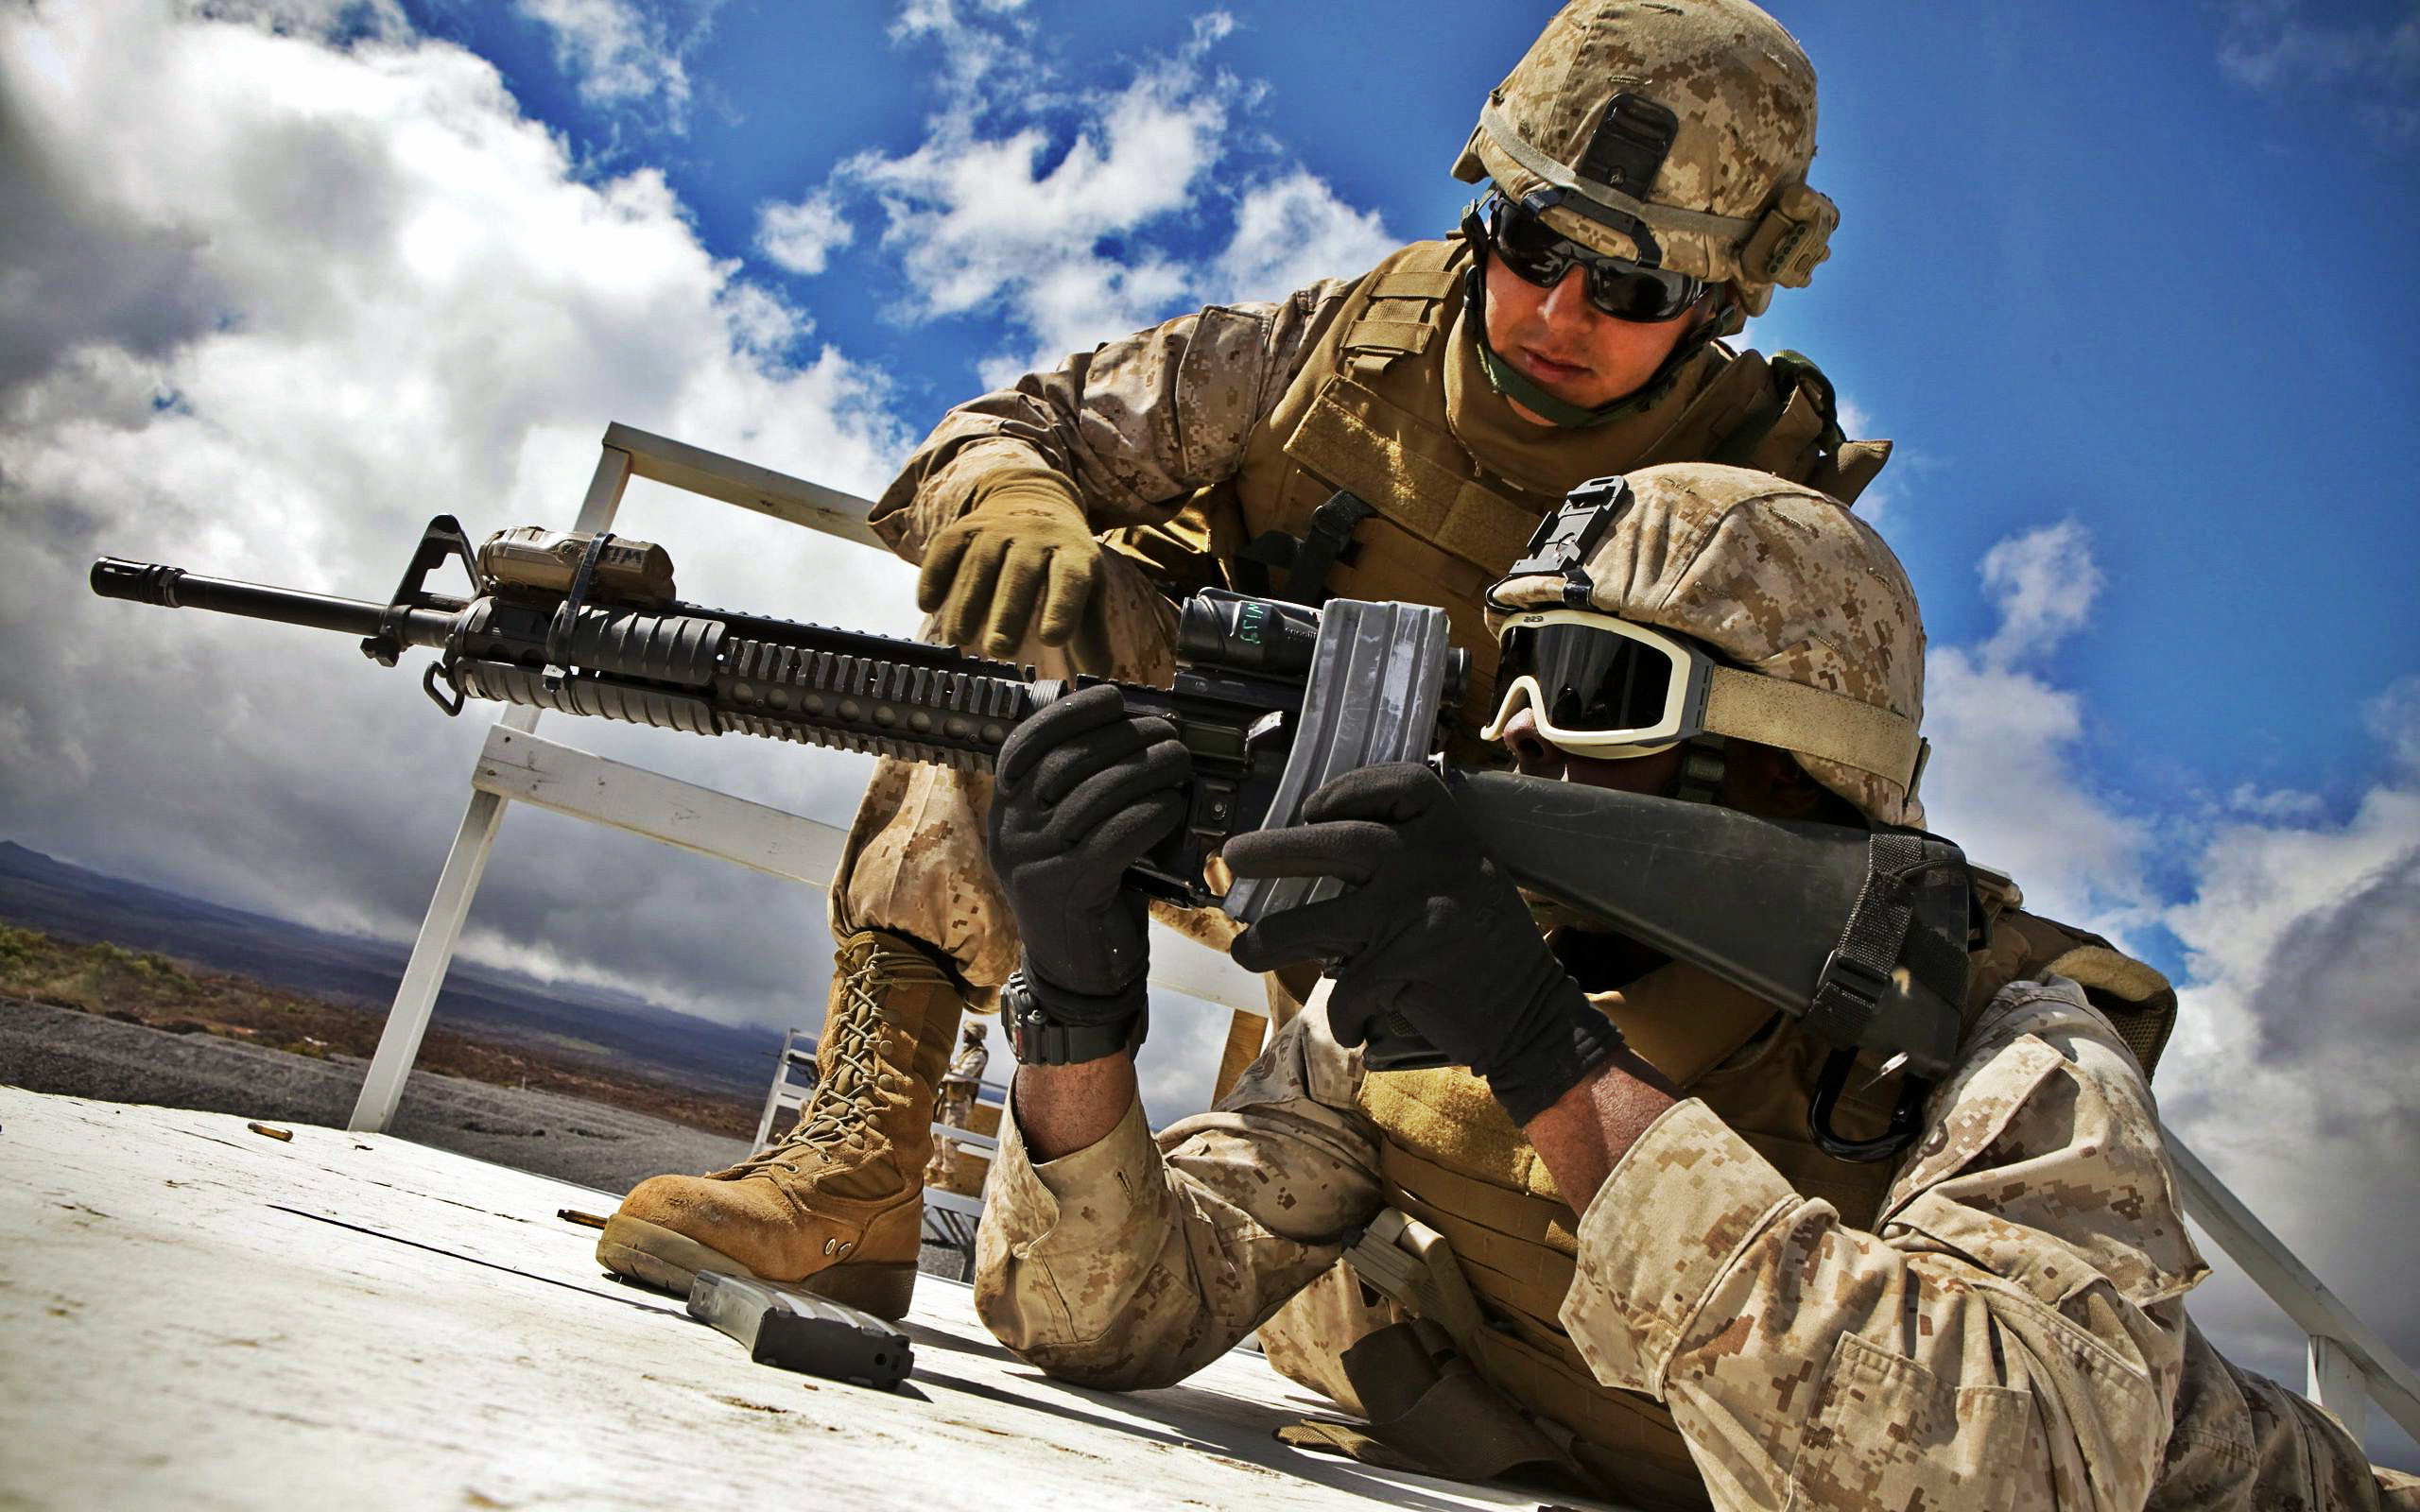 Us marine wallpapers   Hd Wallpapers